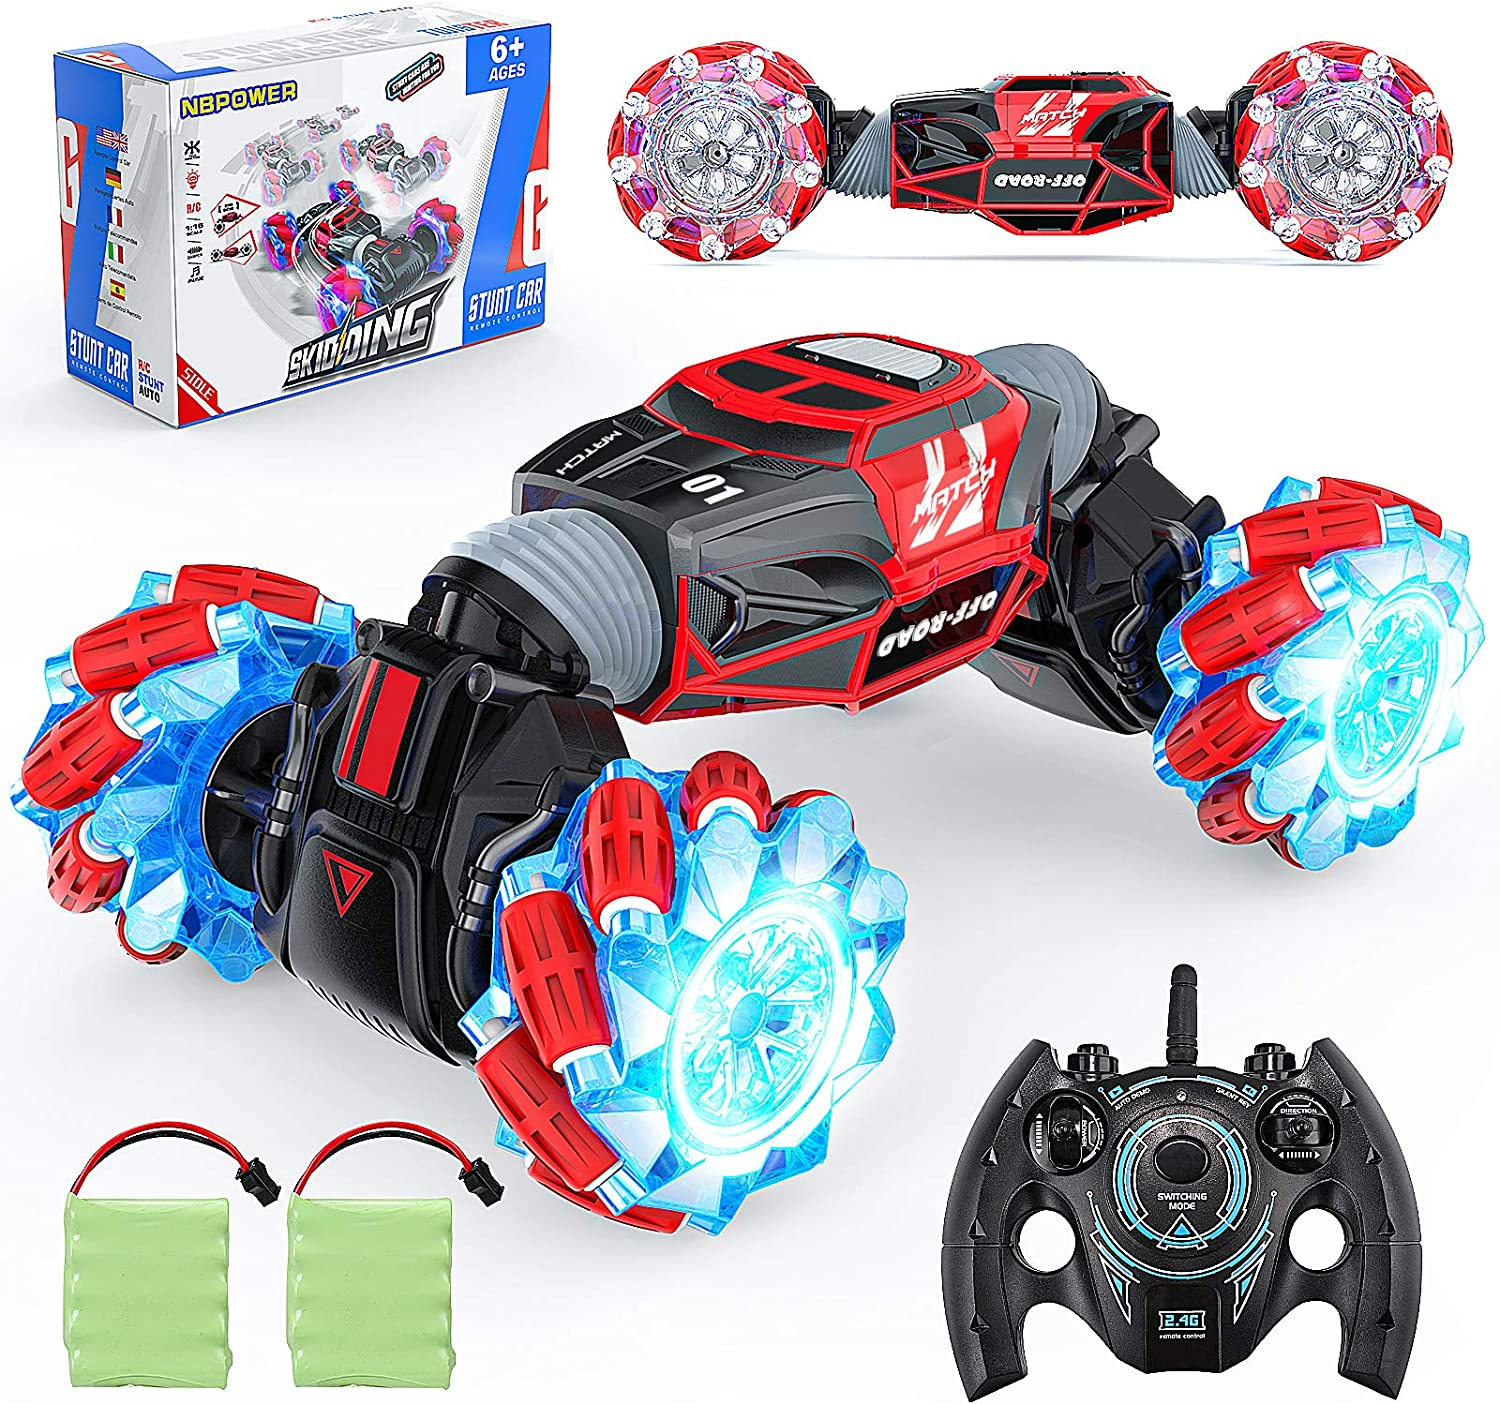 NBPOWER Insane Transform RC Car 4WD Off Road Monster Truck 1:16 Remote Control Crawler for Kids with 2 Batteries for 50+ Min Play